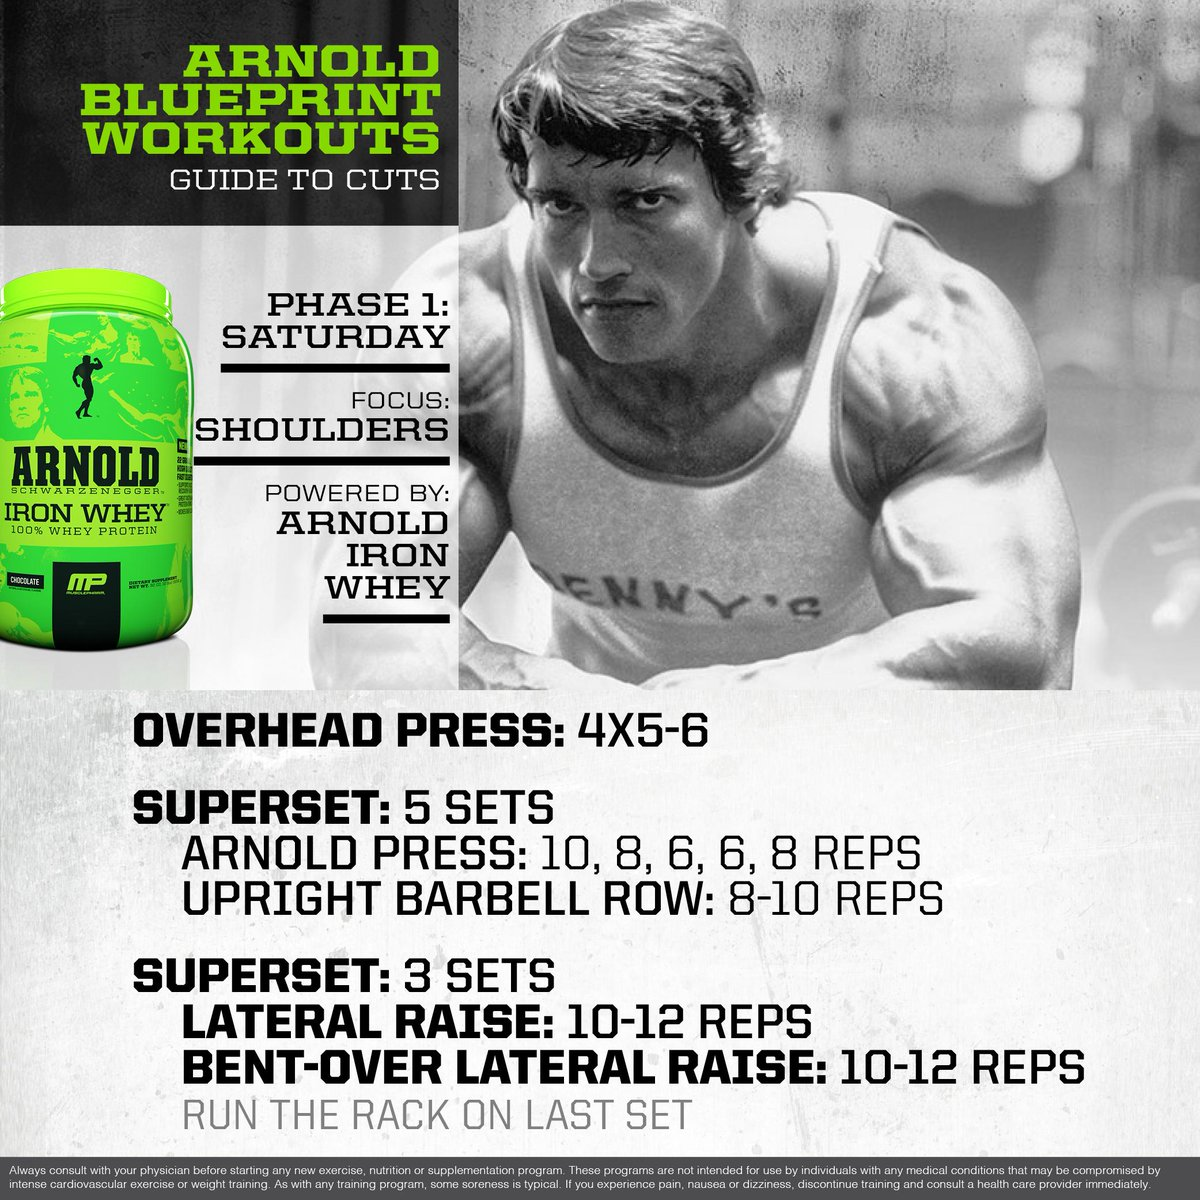 Musclepharm on twitter mp workout of the day arnold musclepharm on twitter mp workout of the day arnold schwarzenegger blueprint to cut shoulder workout powered by ironwhey httptev1aginmut malvernweather Gallery